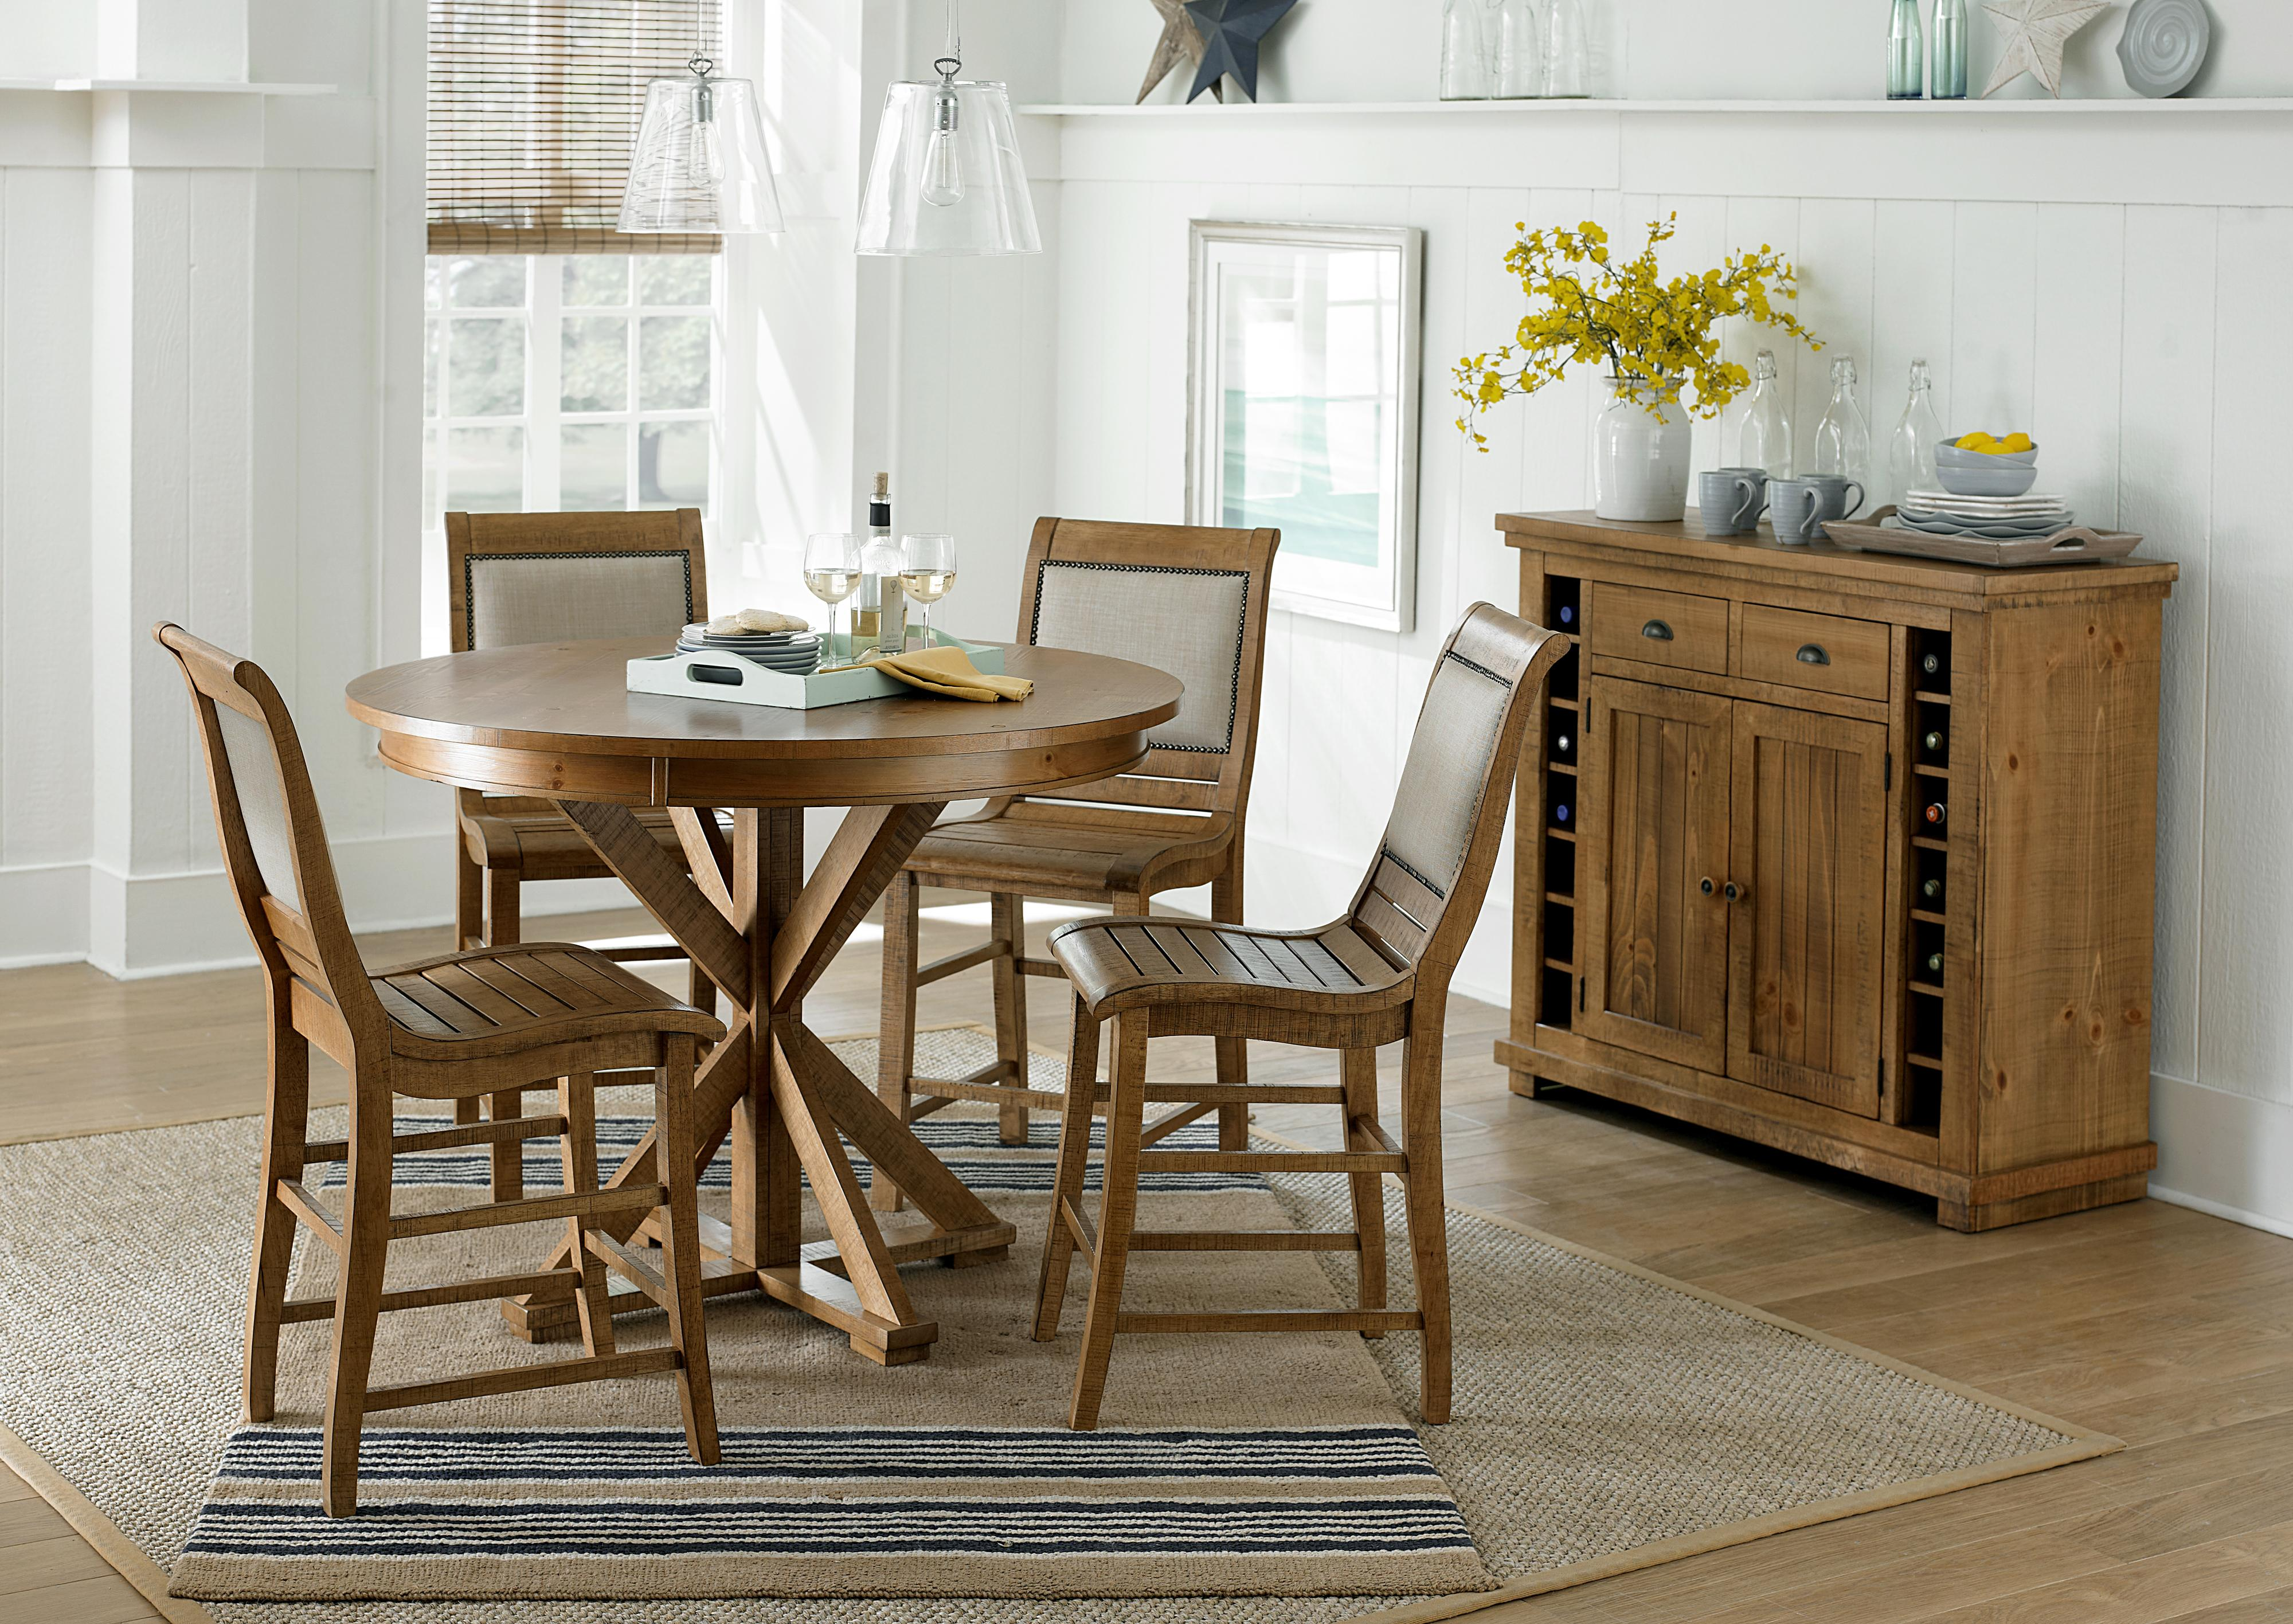 dining casual dining room group item number p808 dining room group